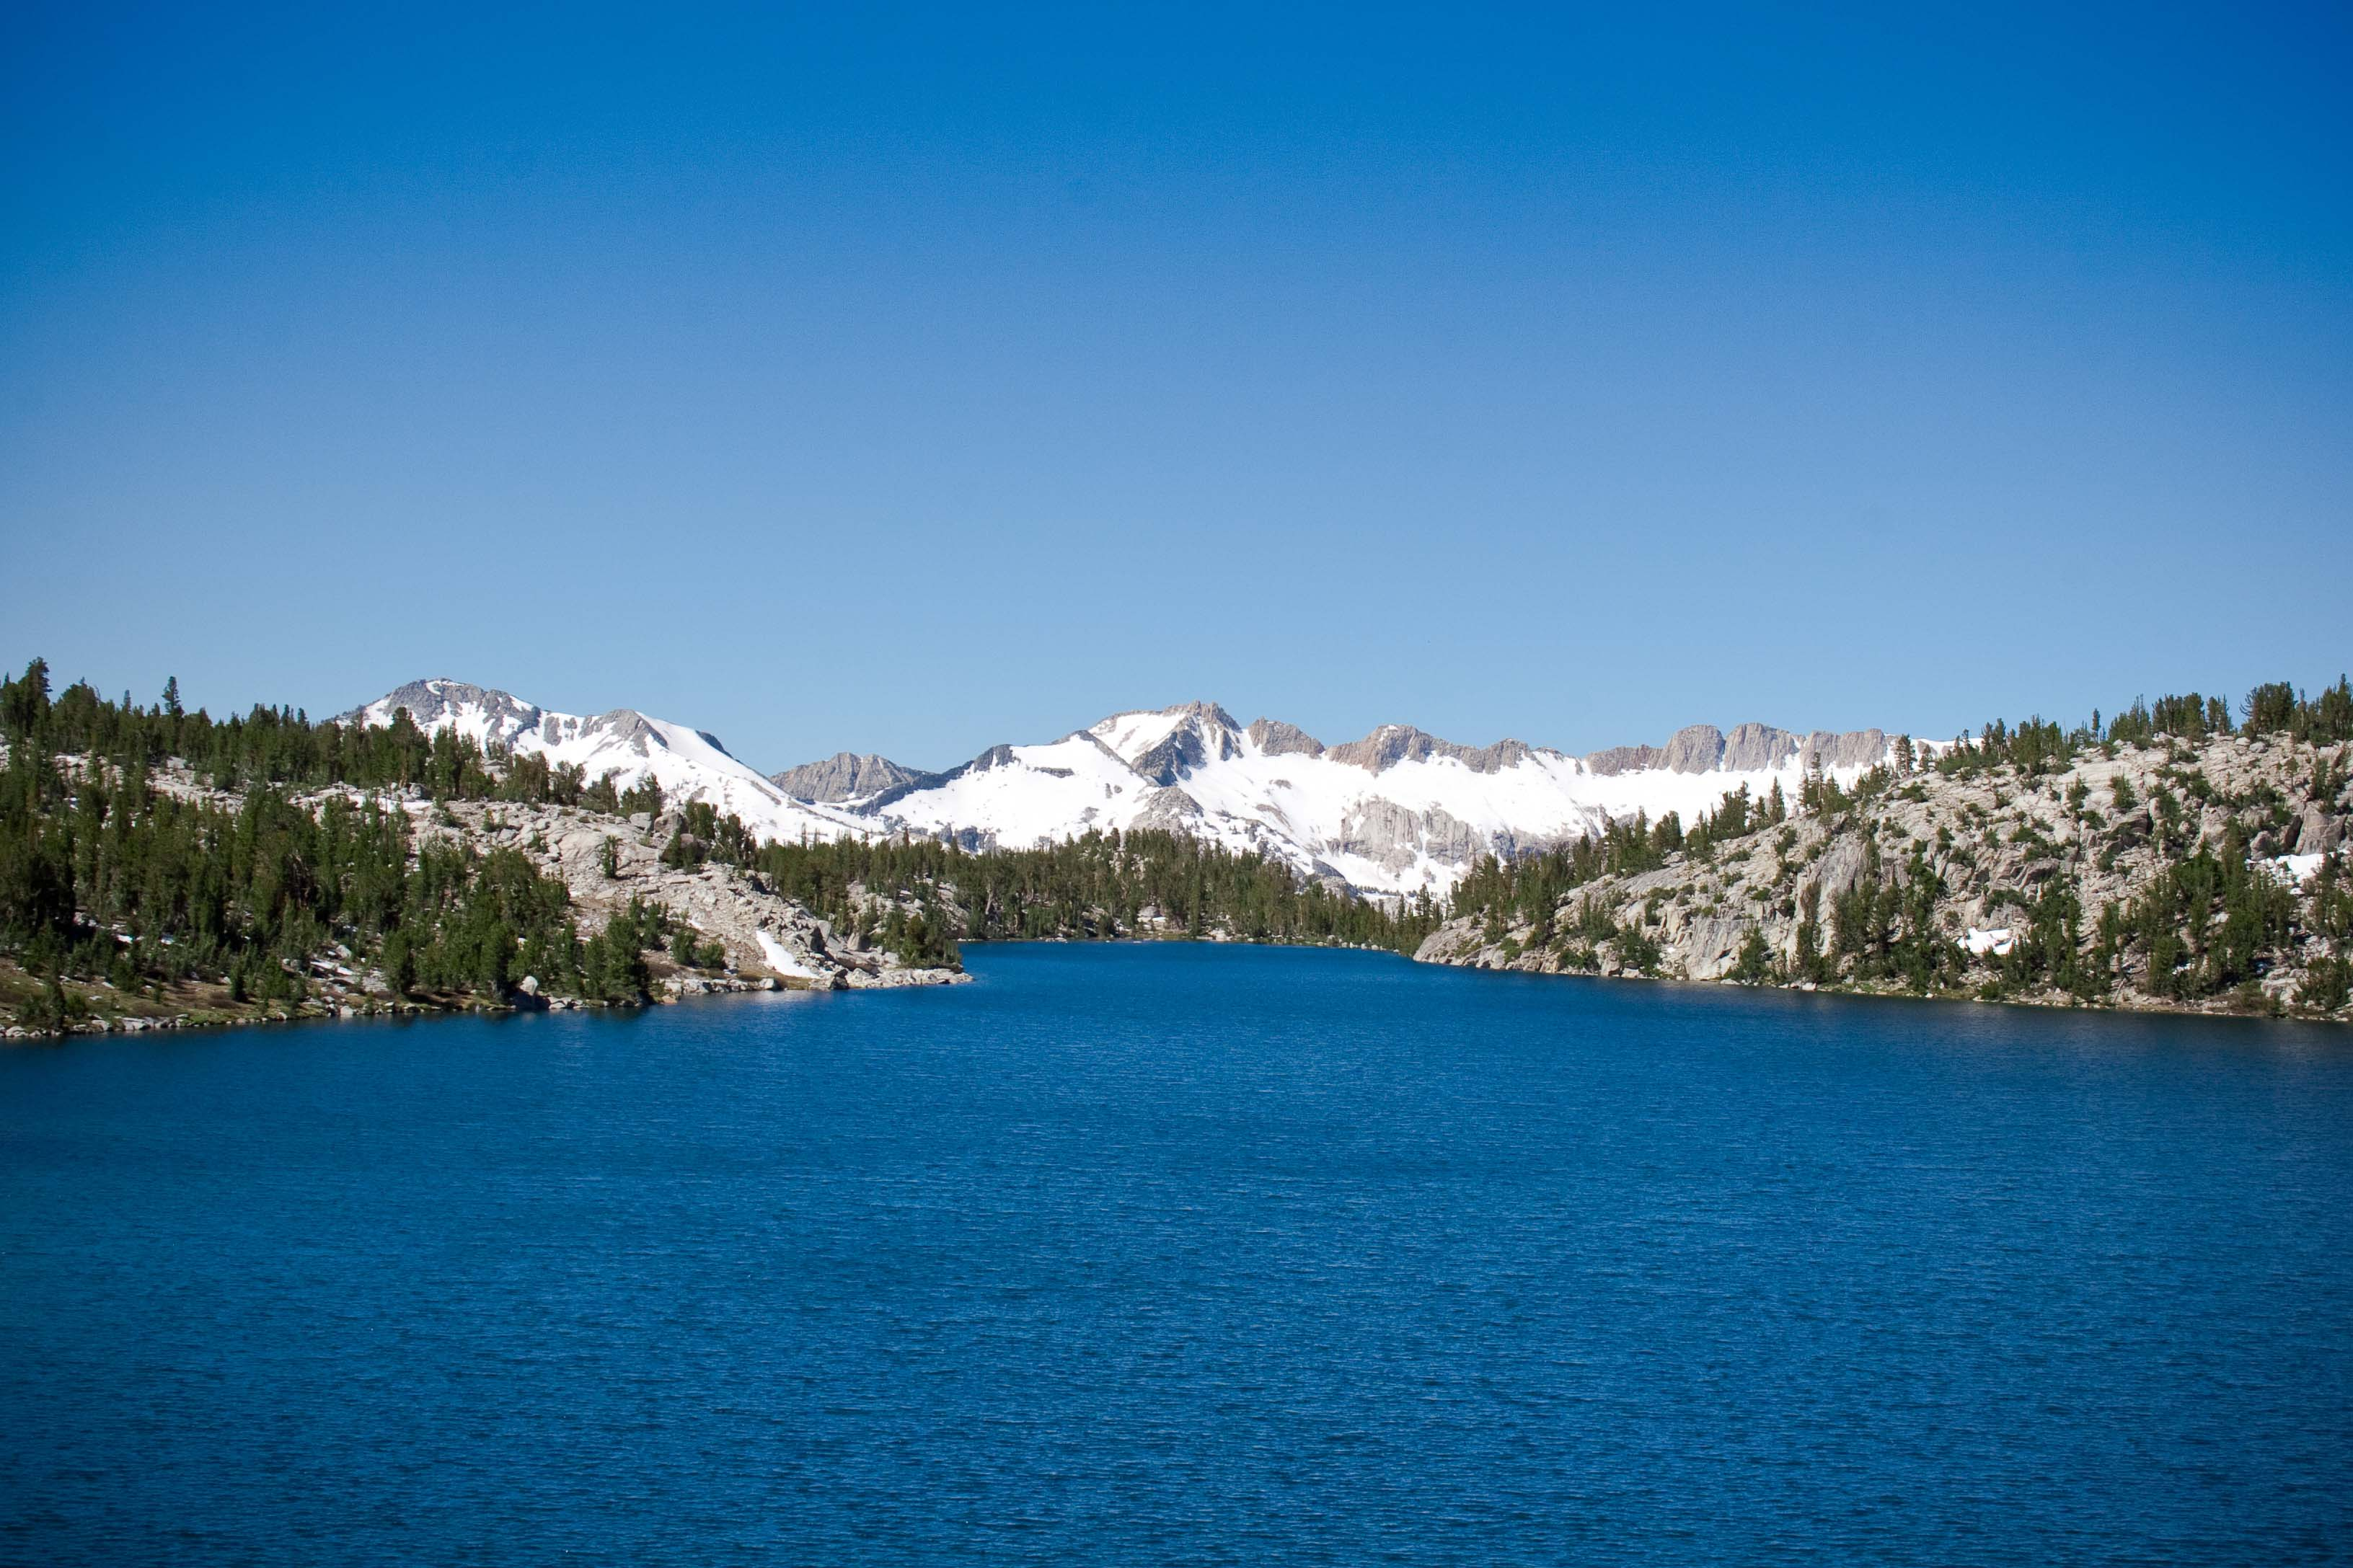 blue-lake-and-mountain